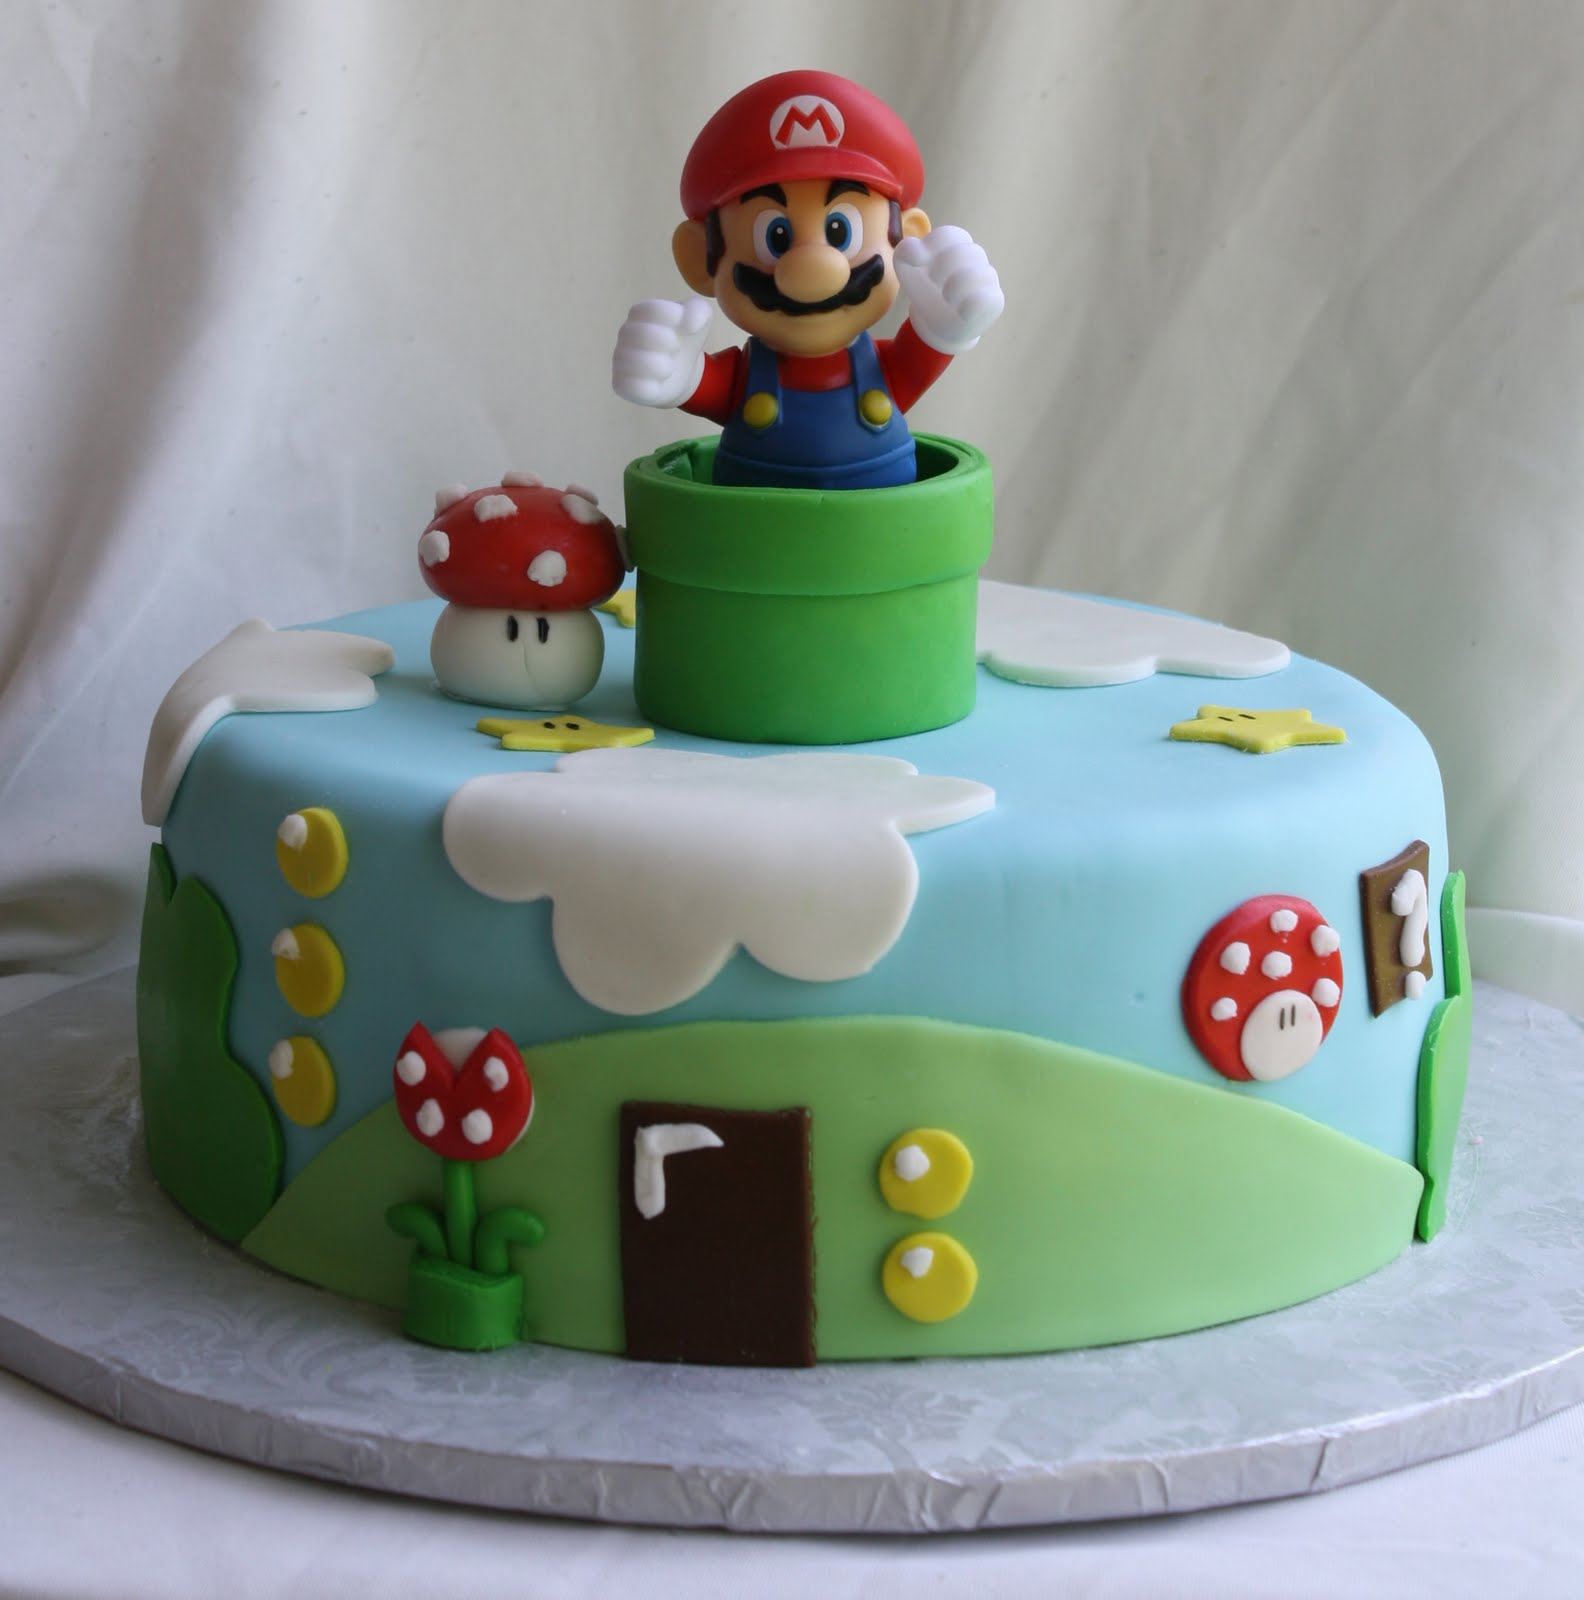 Wondrous Mario Brother Cake Teach Where You Live Funny Birthday Cards Online Alyptdamsfinfo